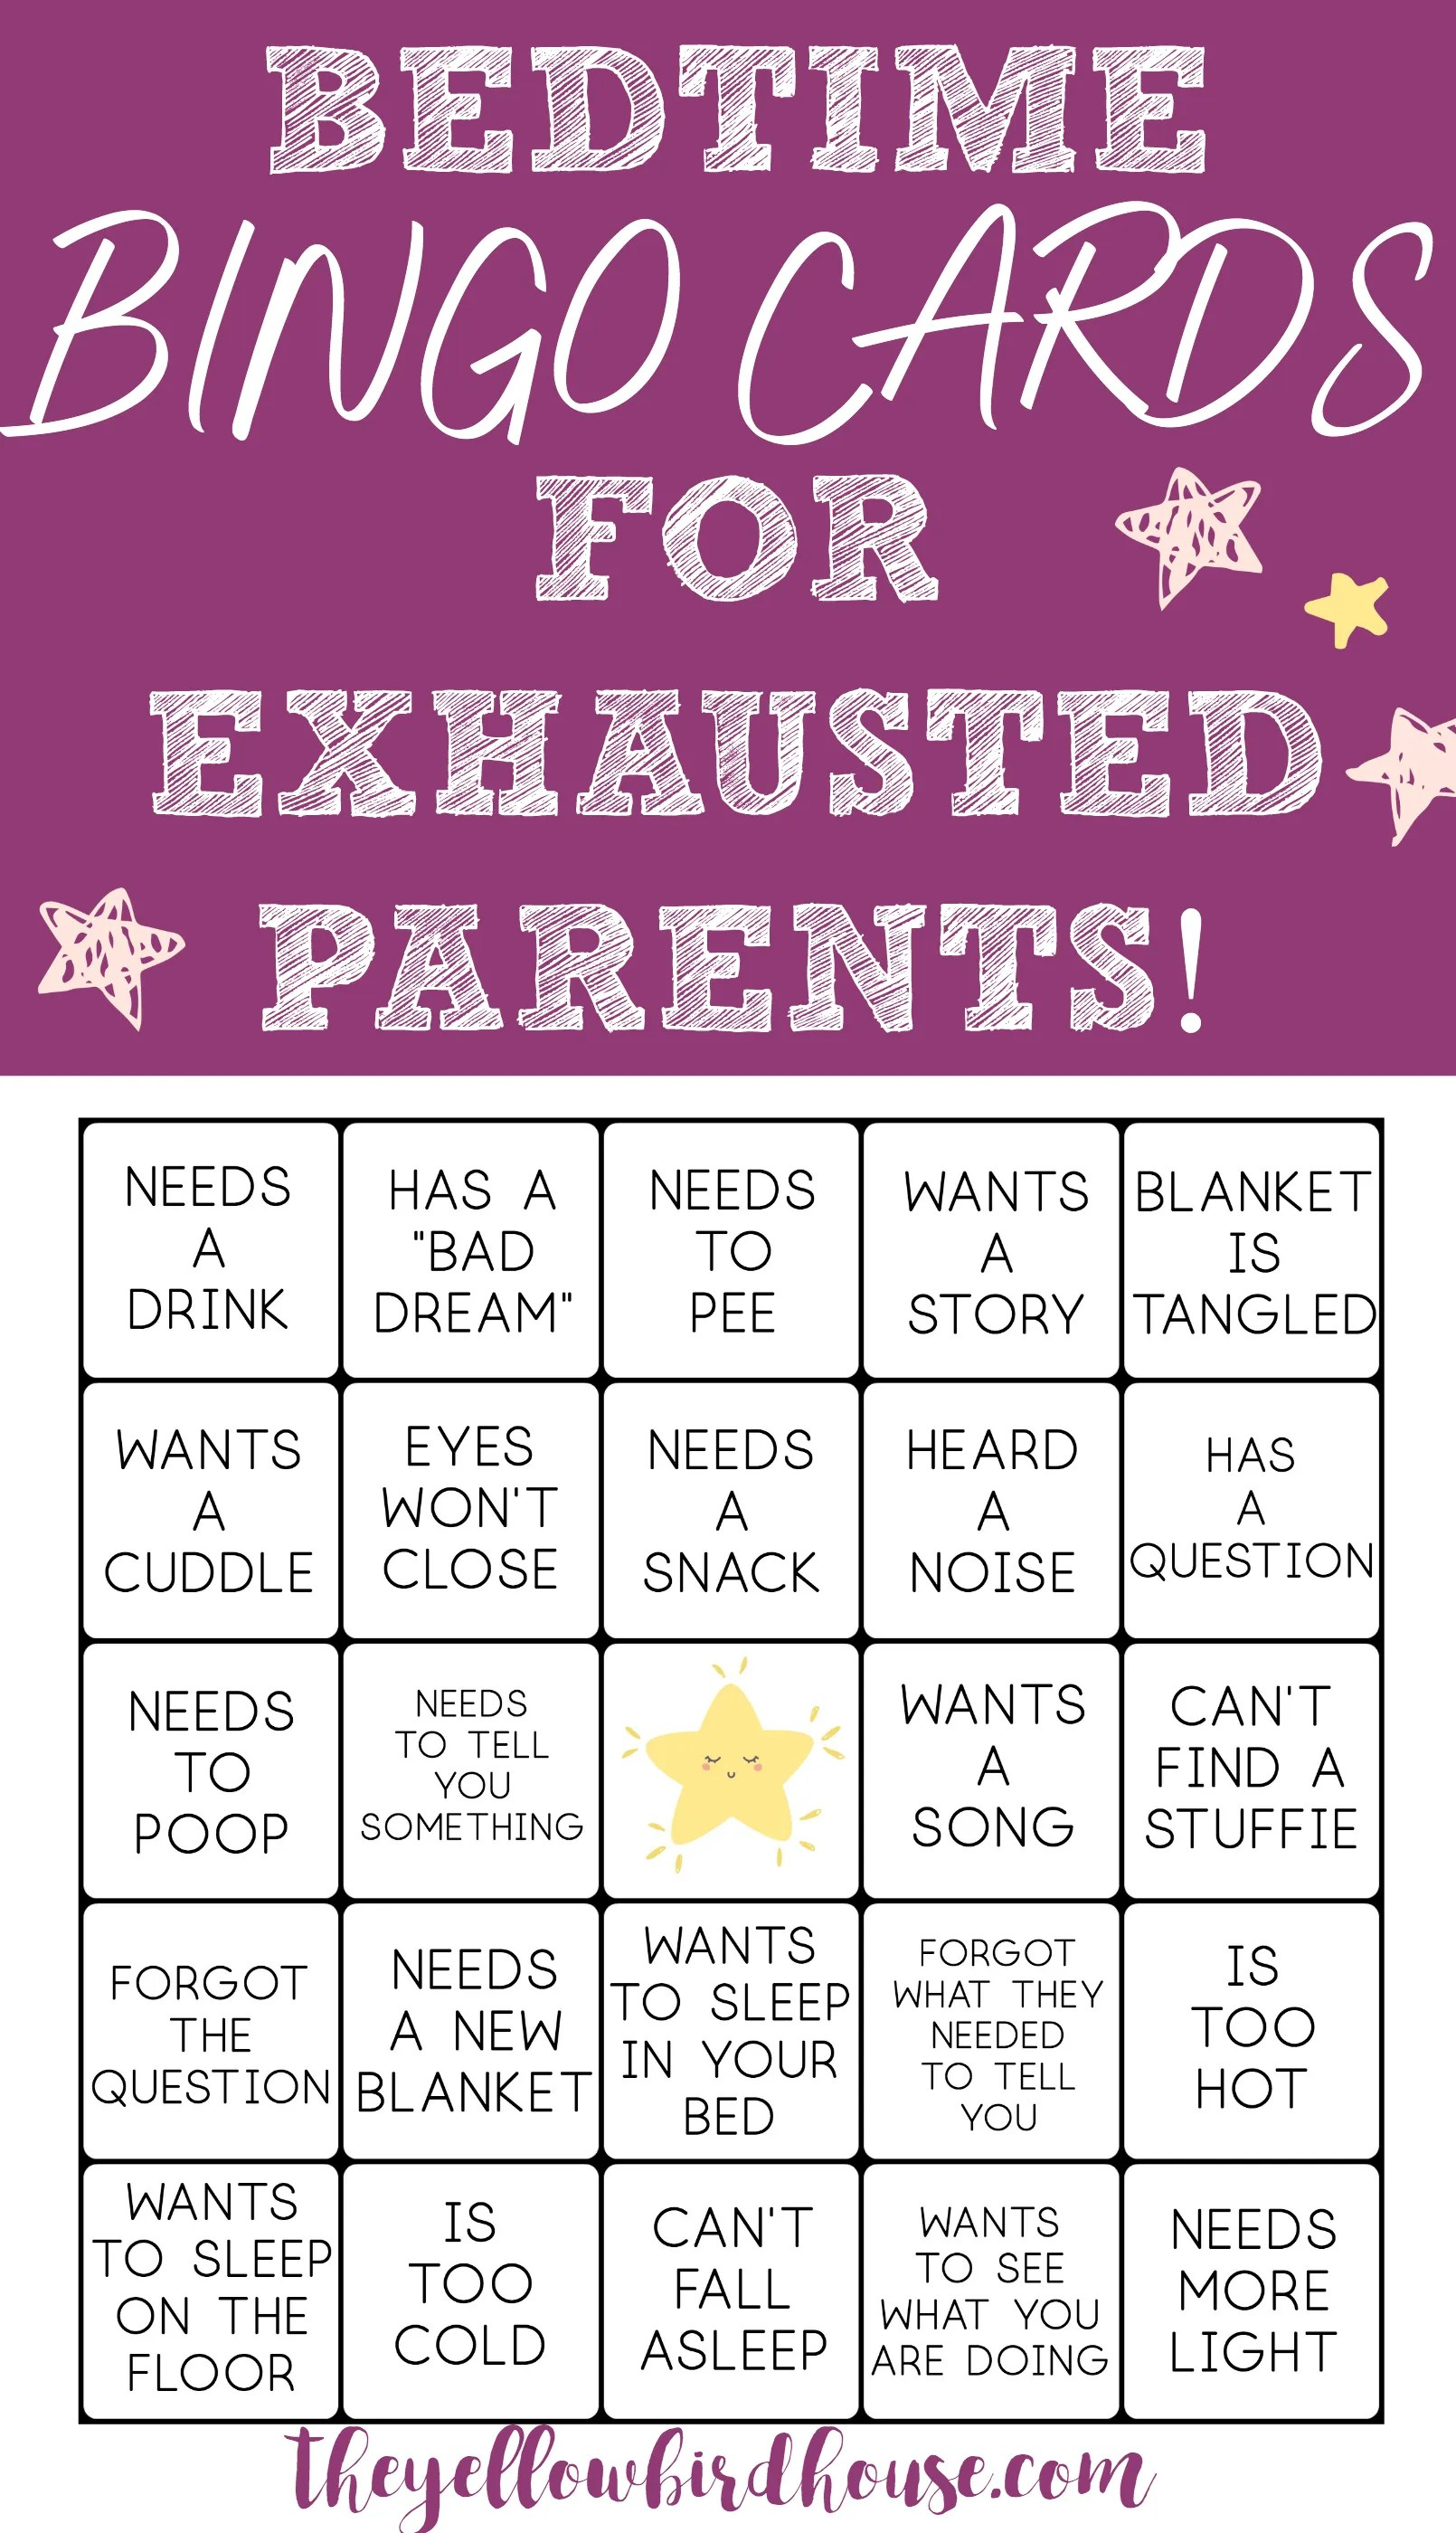 Play a game of Toddler Bedtime Bingo with your spouse. All the reasons why my kid is out of bed. Have fun with tiresome bedtimes by playing bedtime bingo!